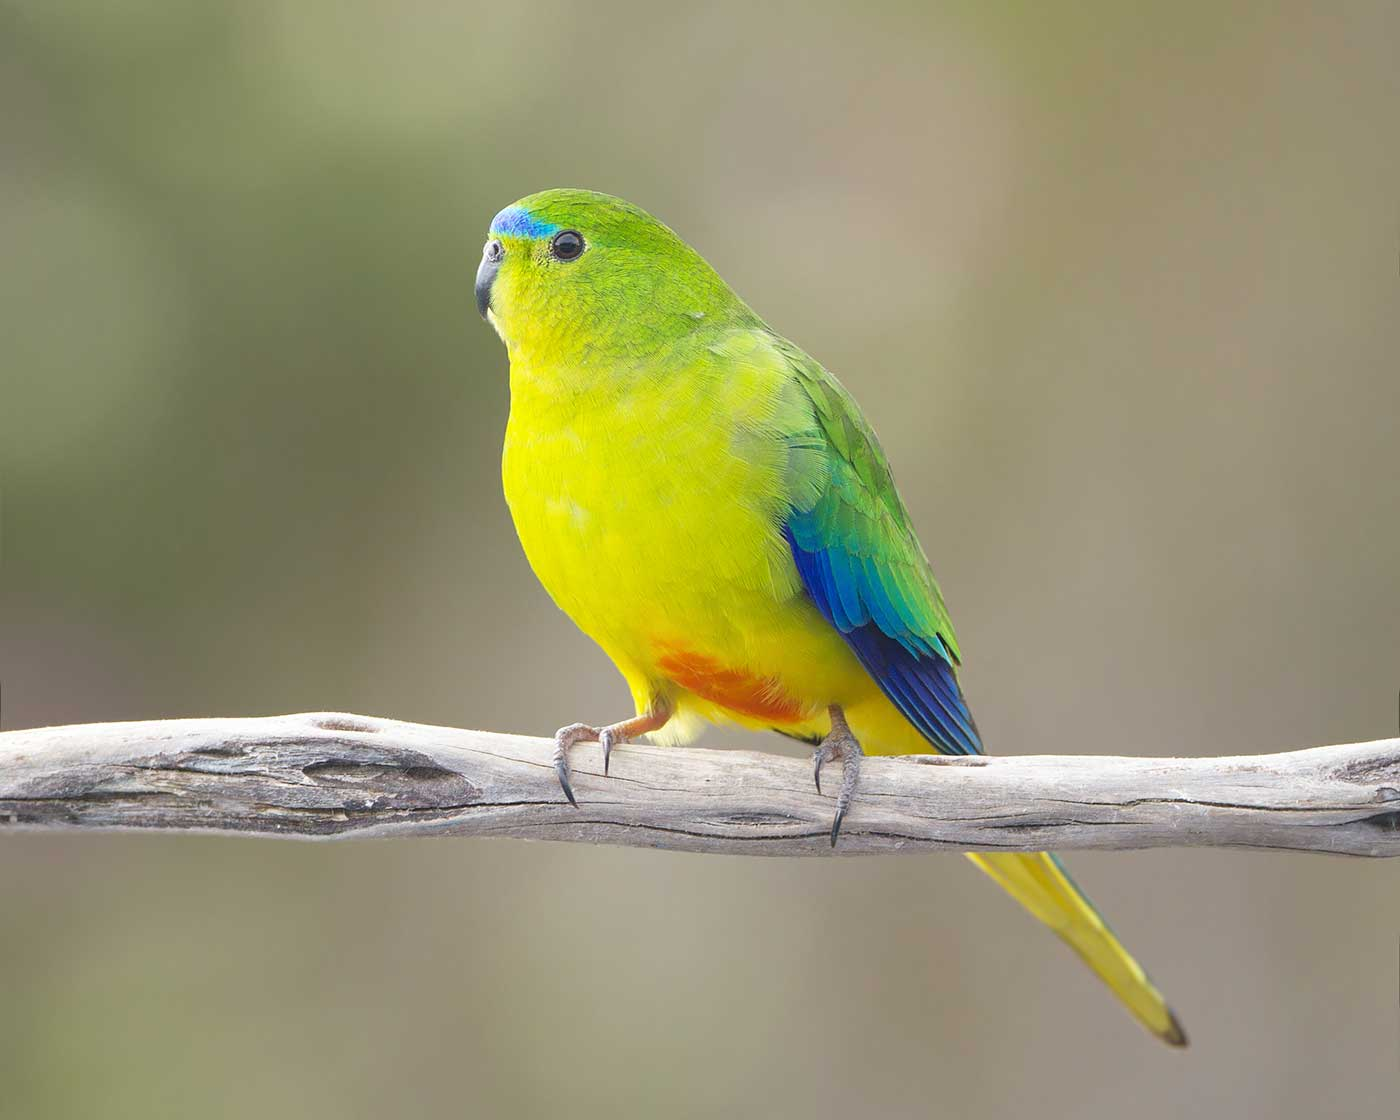 A small parrot with bright yellow feathers on its breast, blue feathers between its eyes and on its wings and a small patch of orange feathers on its underbelly. - click to view larger image